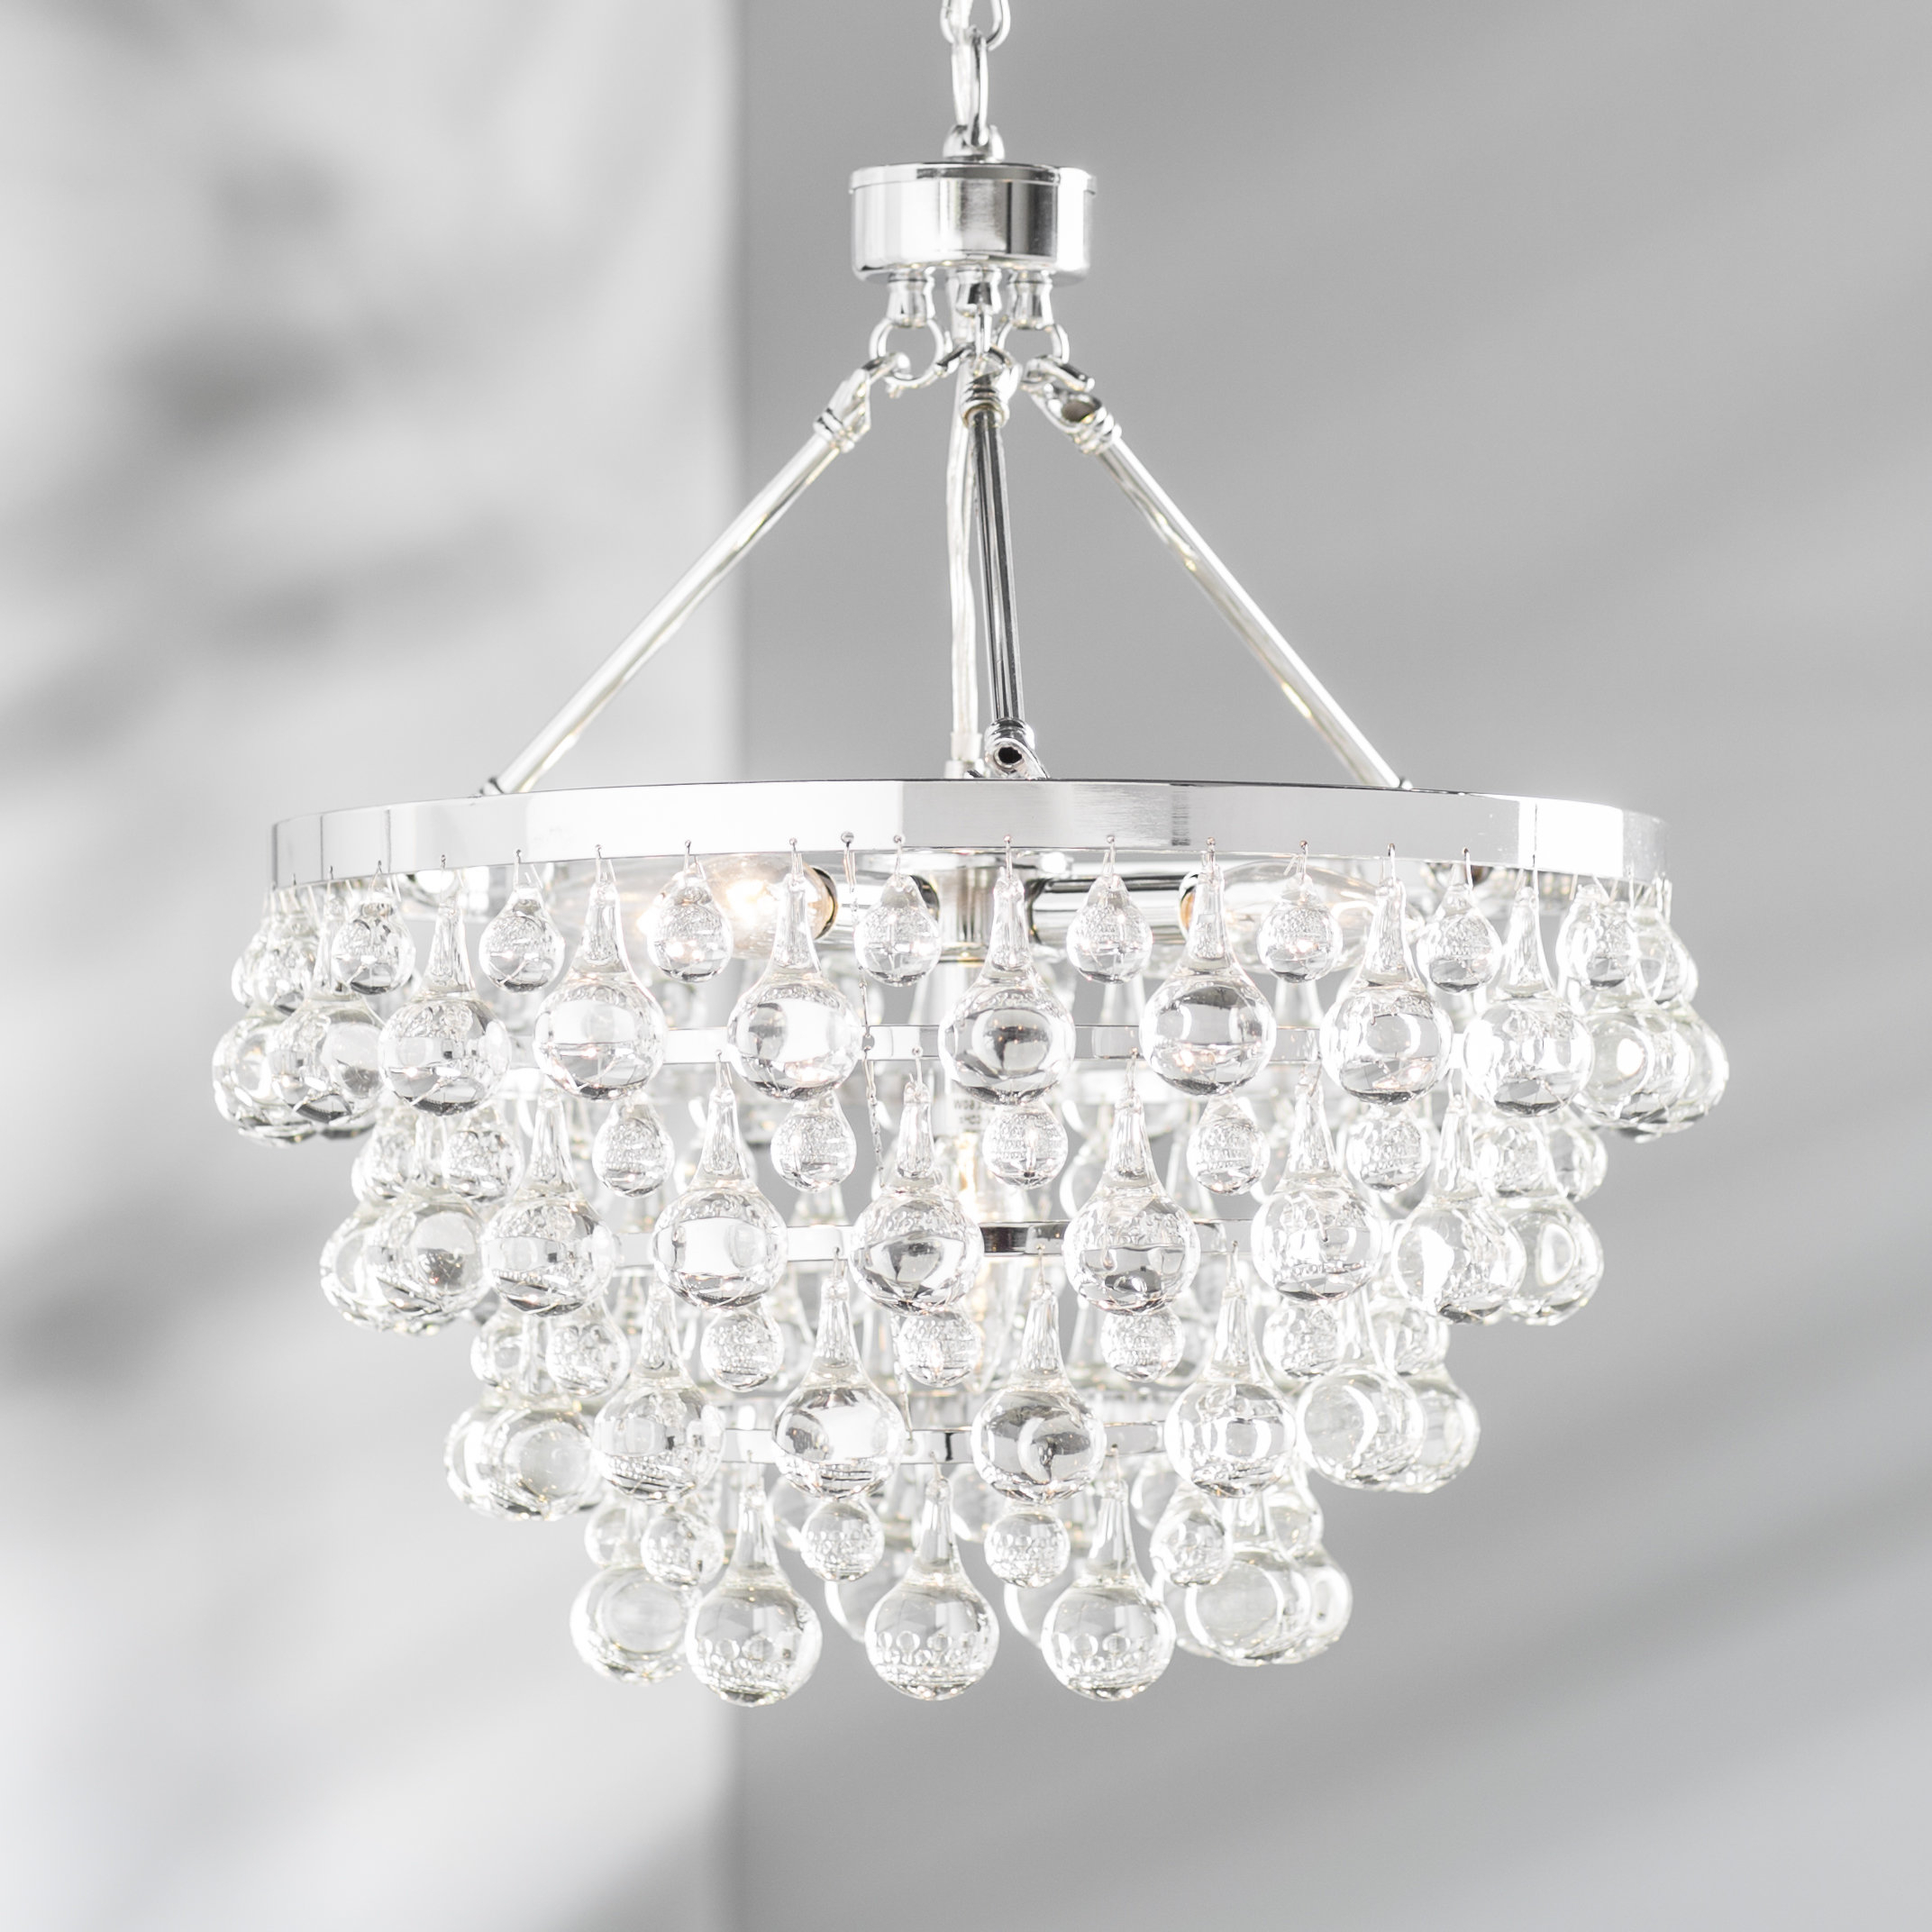 Verdell 5 Light Crystal Chandeliers Within Most Recent Ahern 5 Light Crystal Chandelier (Gallery 6 of 20)